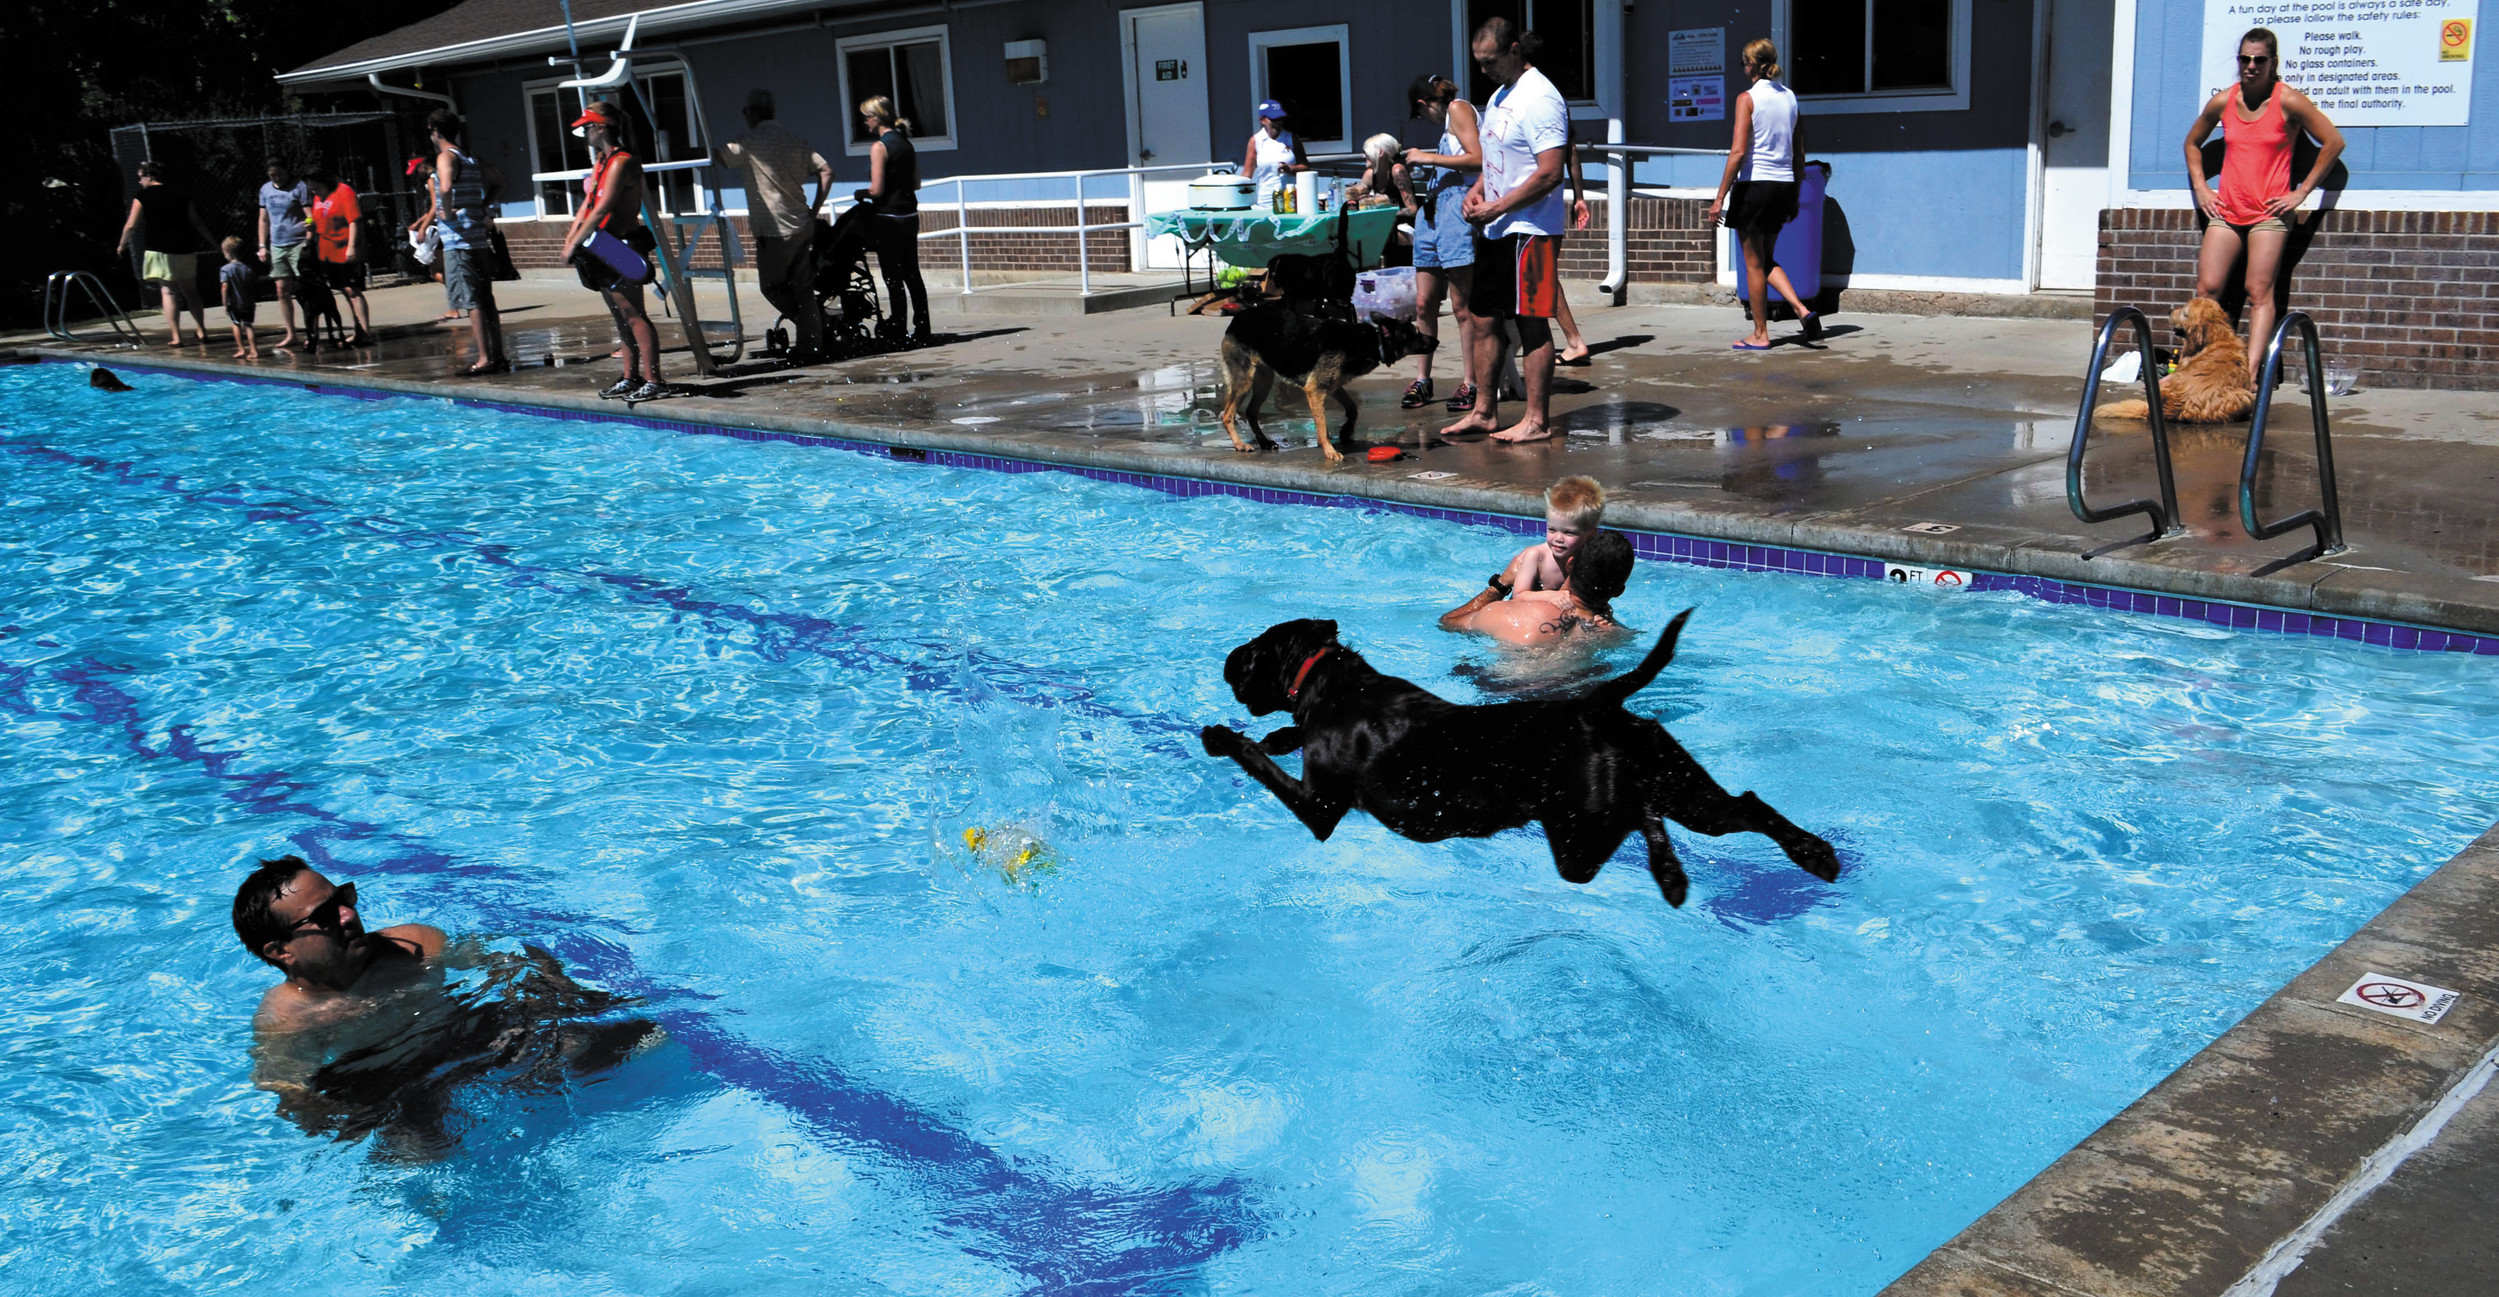 Poncho leaps into the Lake Arbor Swimming Pool full force to go after his flying tennis ball.